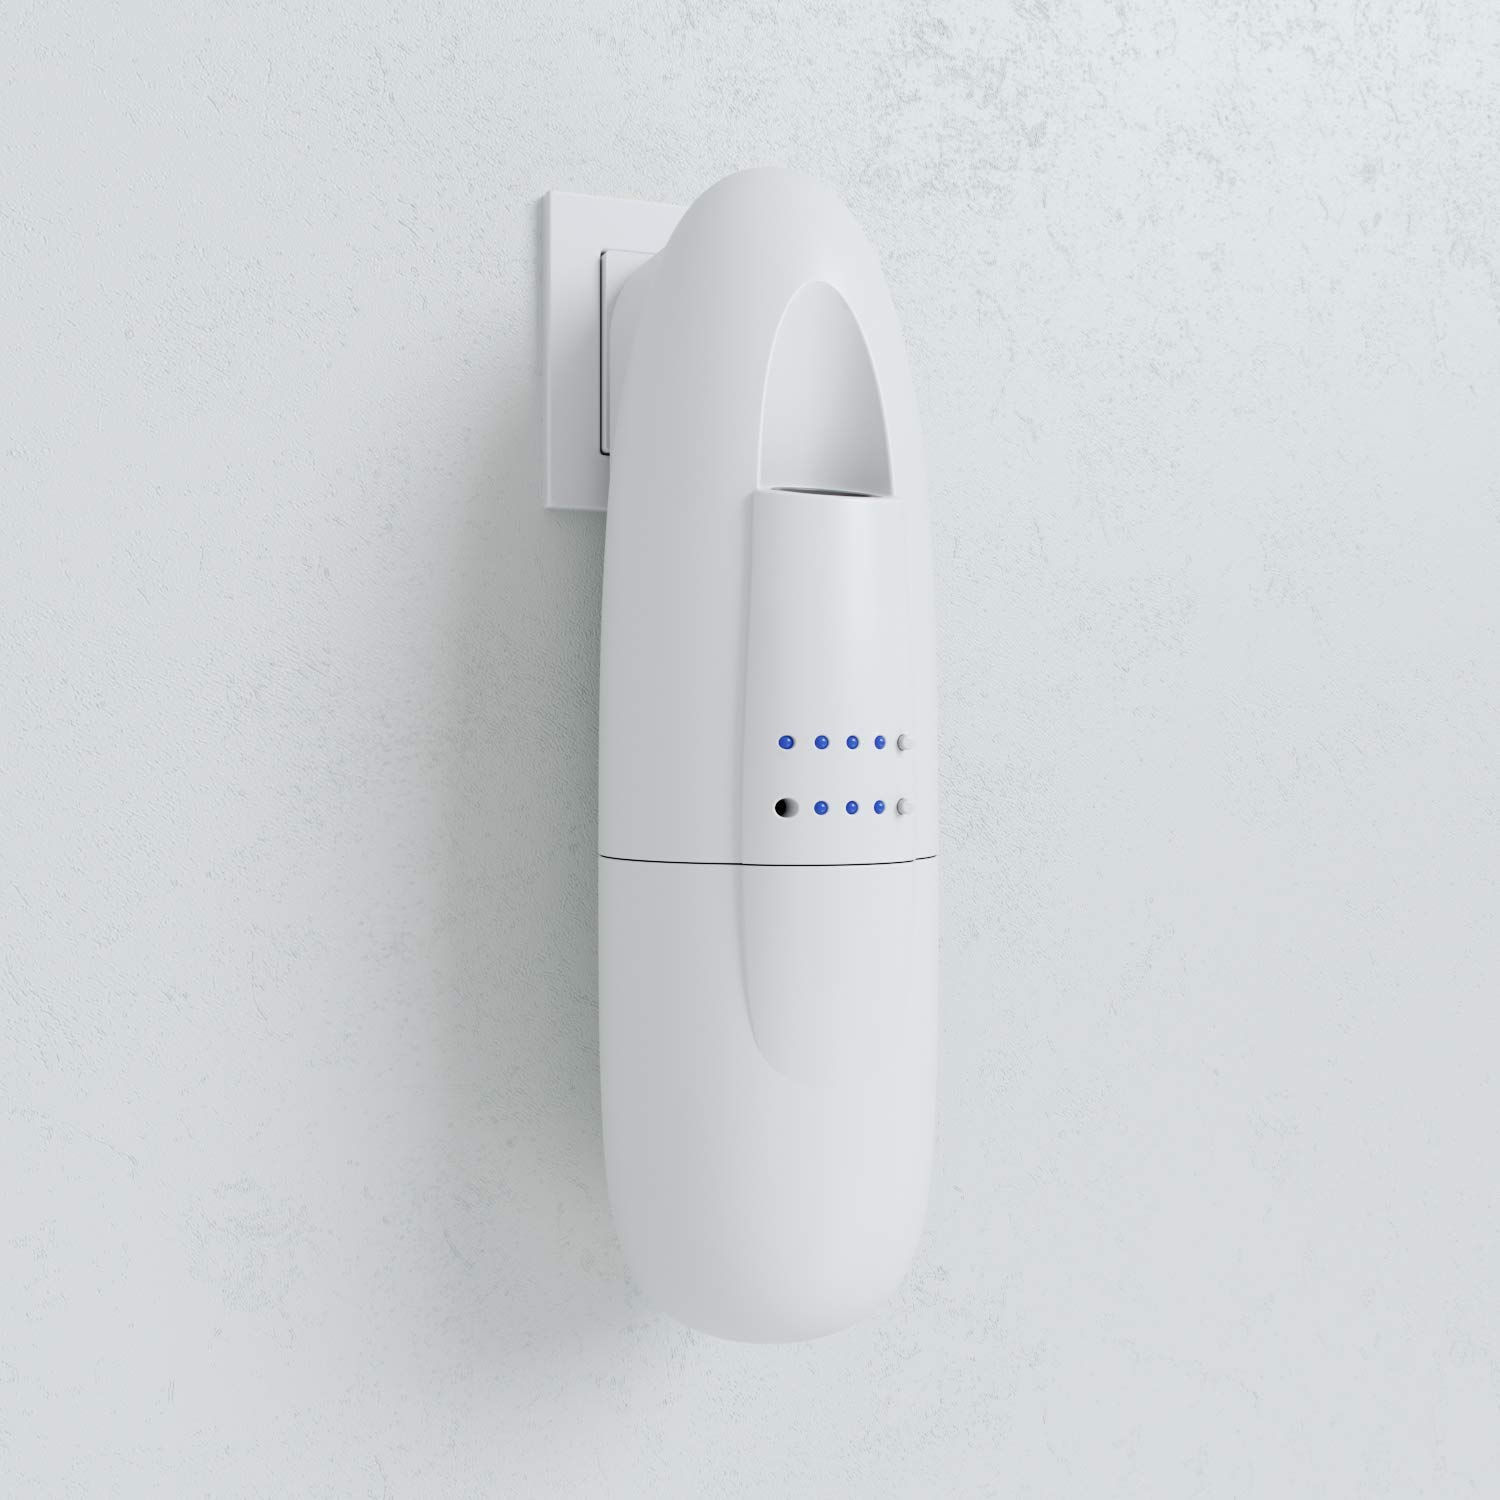 Aromasters Smart Aroma Scent Diffuser with Complimentary Oil Bottle - Wall Plugin Scent System, Portable Medium Space Home Essential Oil Diffuser by Aromasters